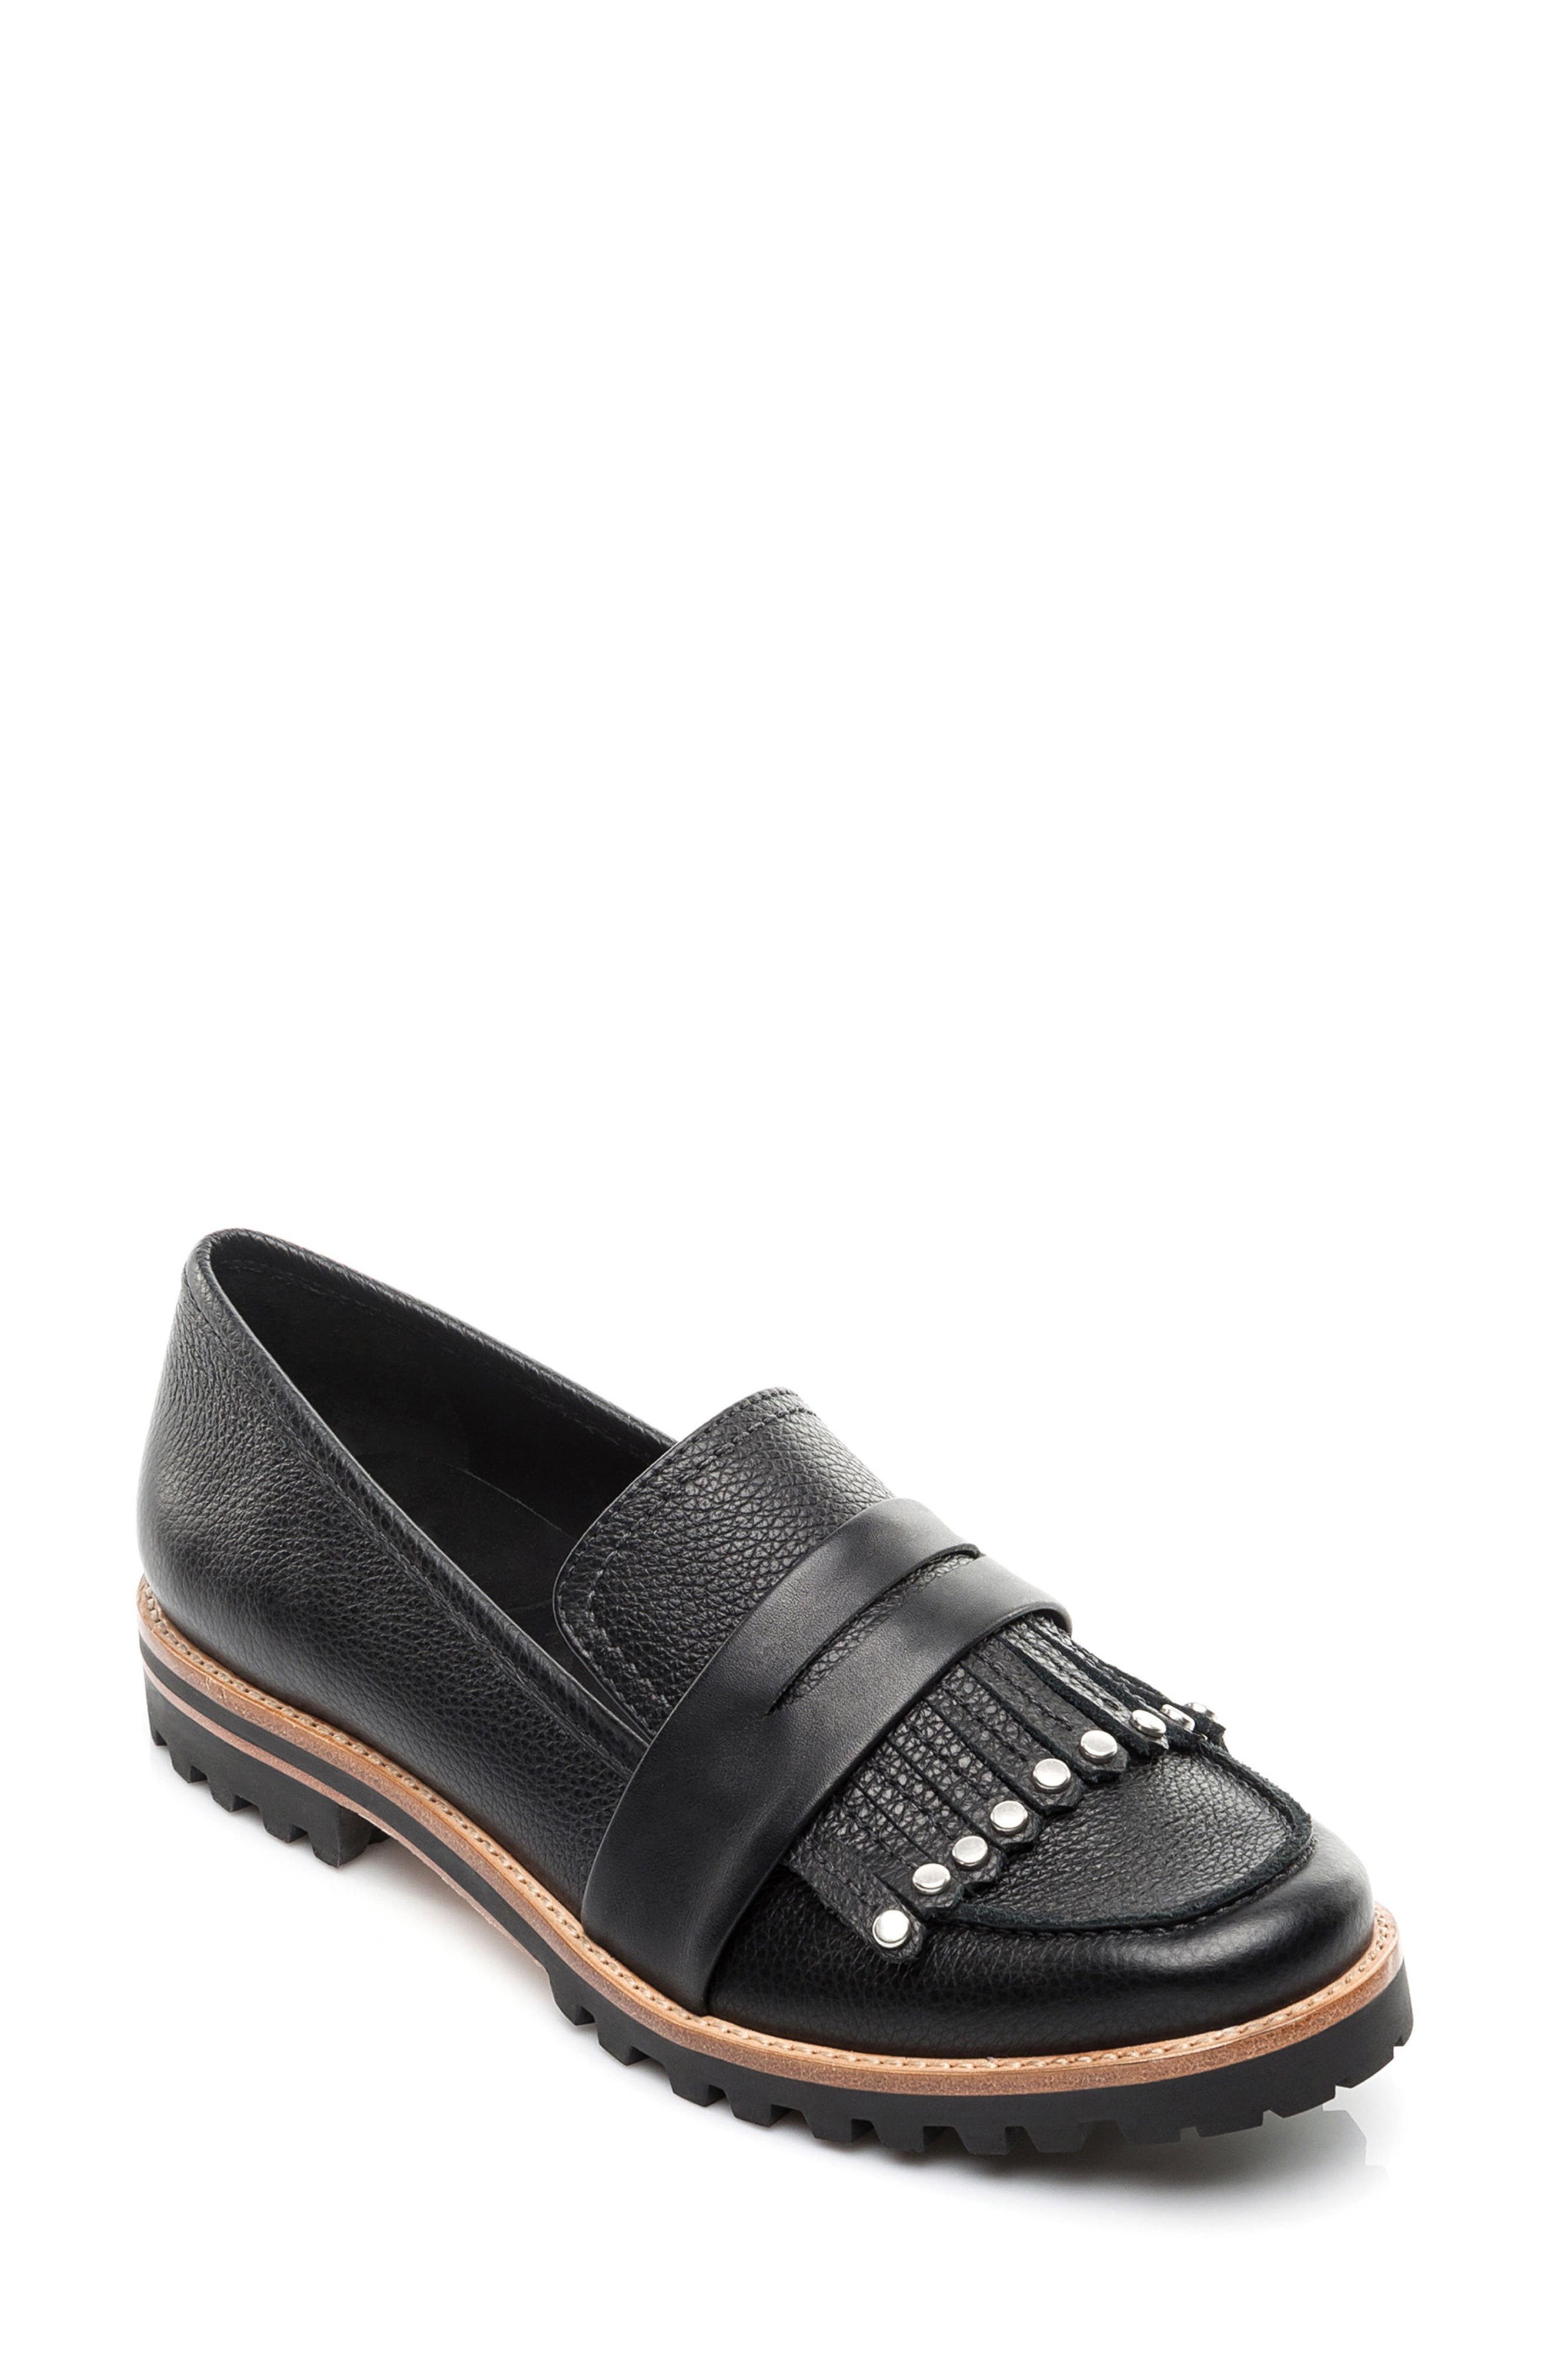 Olley Loafer,                             Main thumbnail 1, color,                             Black Leather